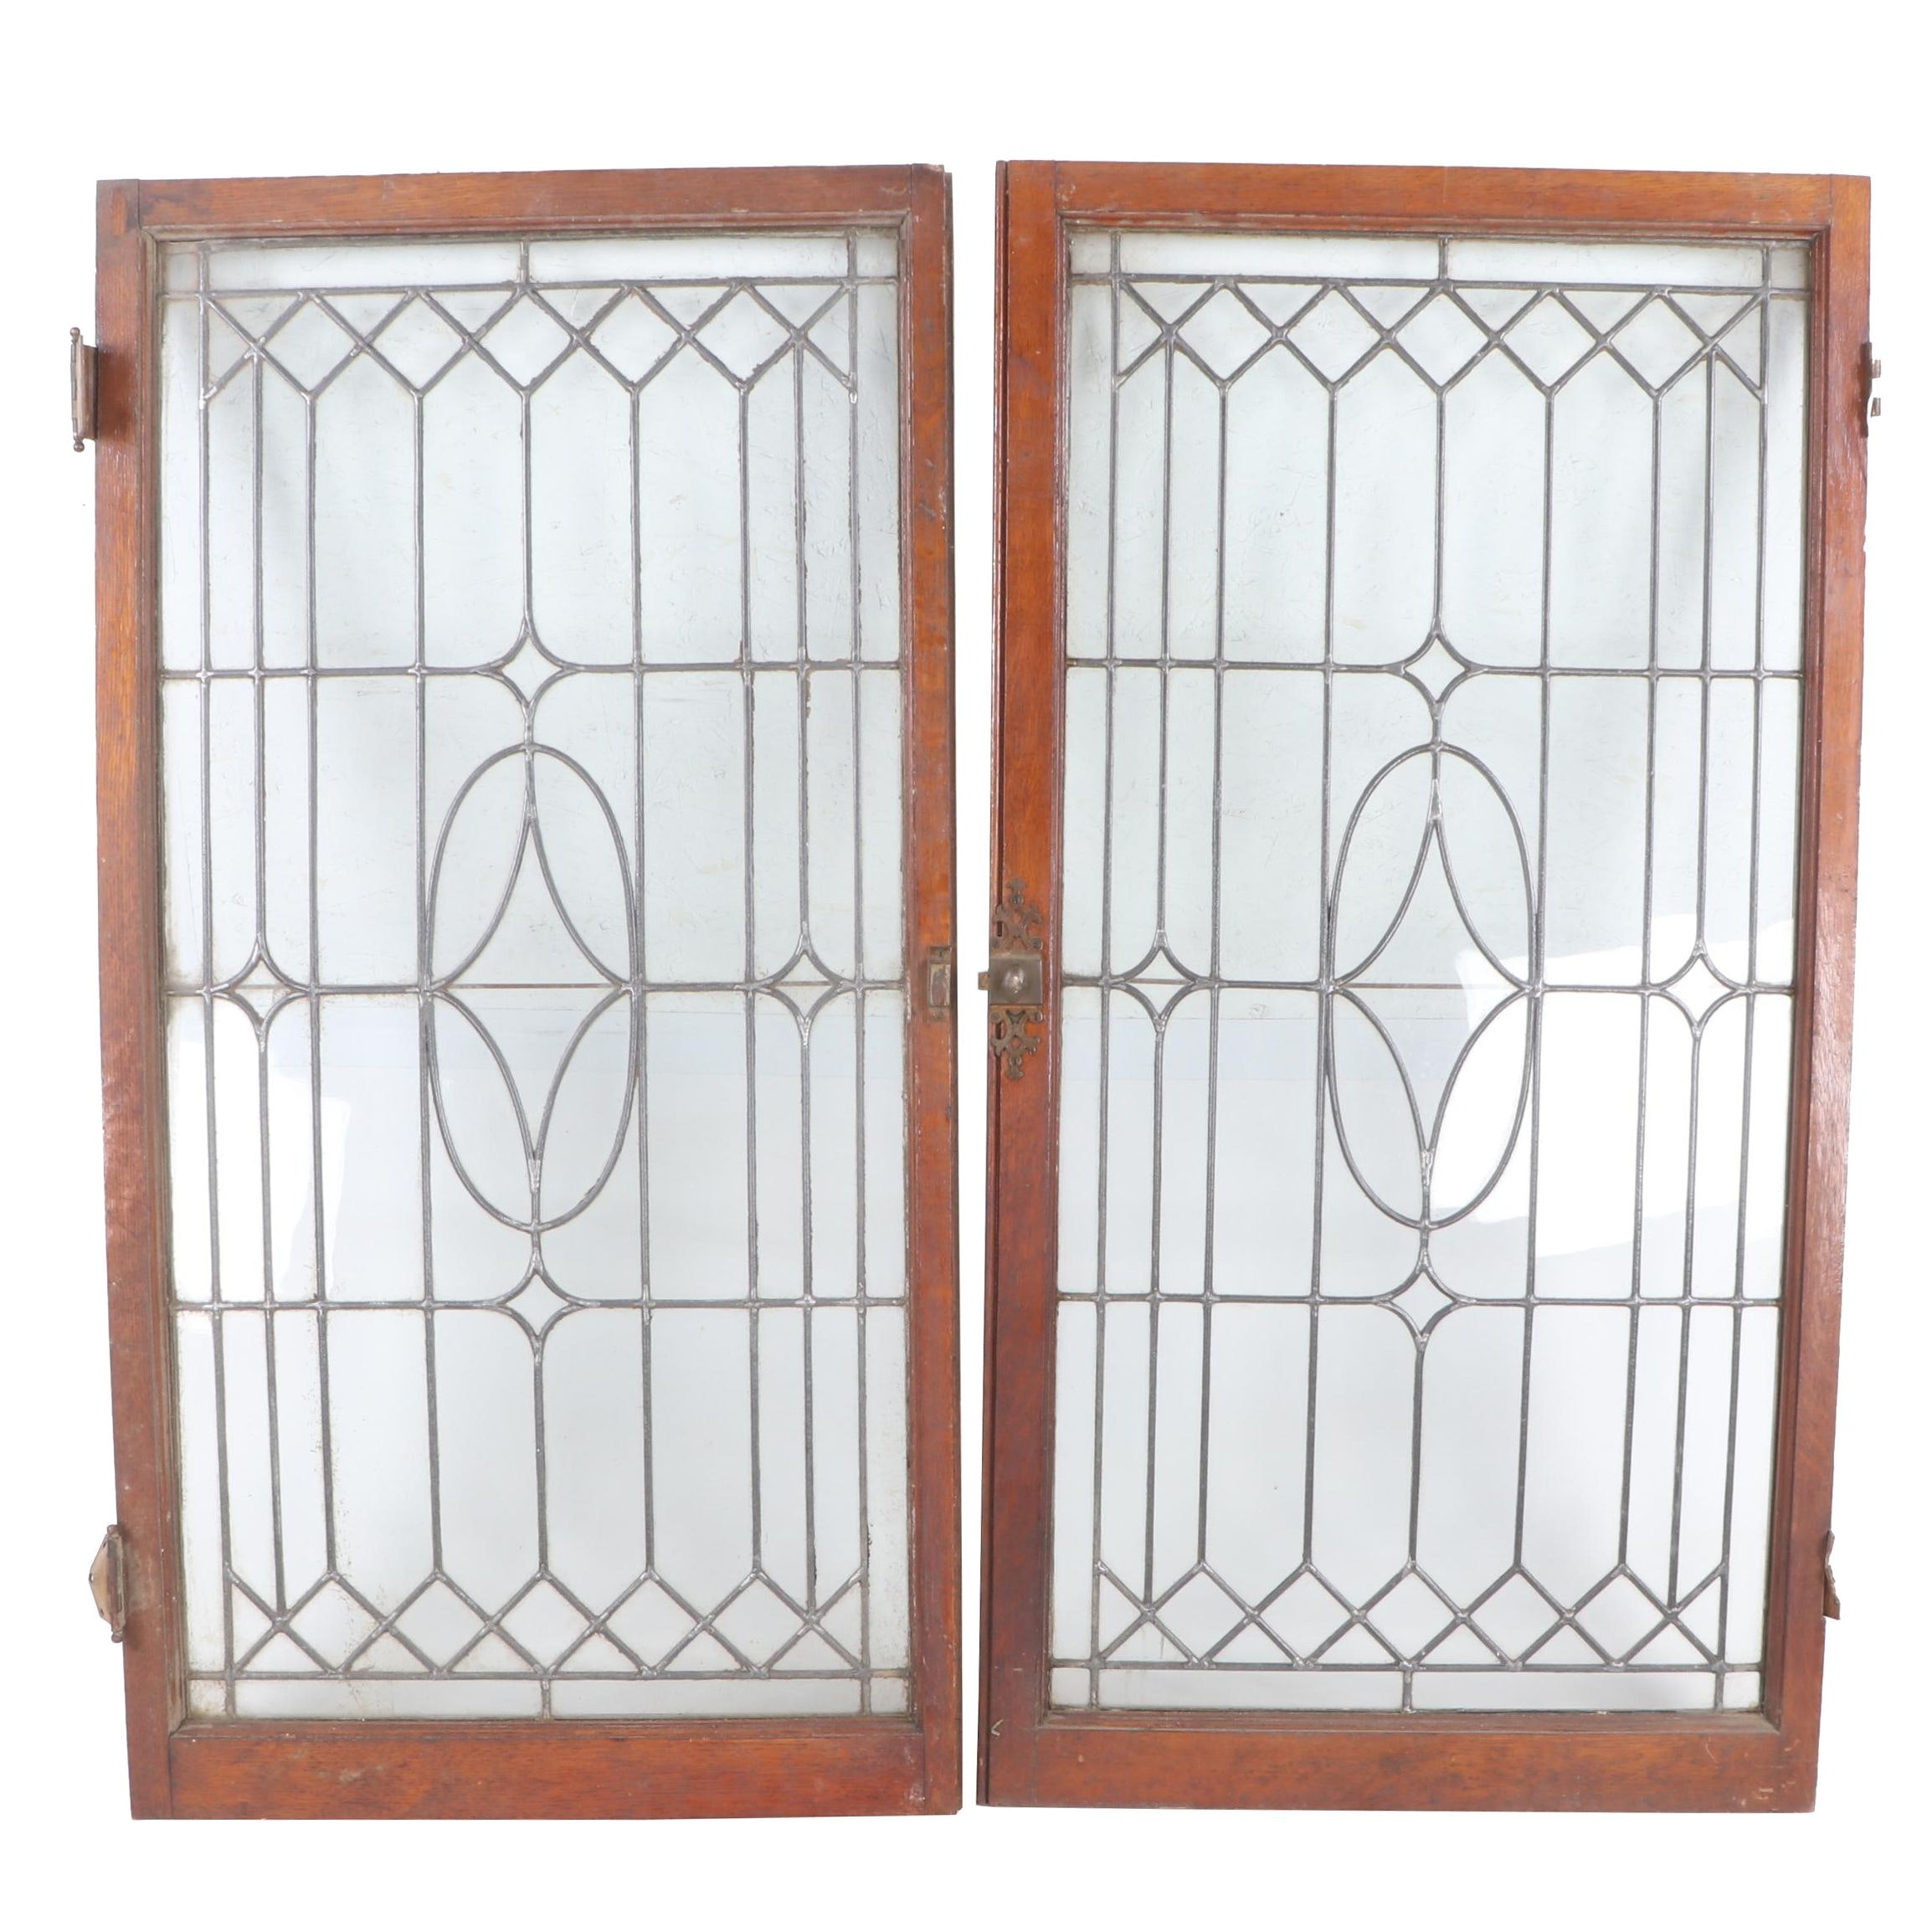 Gothic Style Leaded Windows, Antique